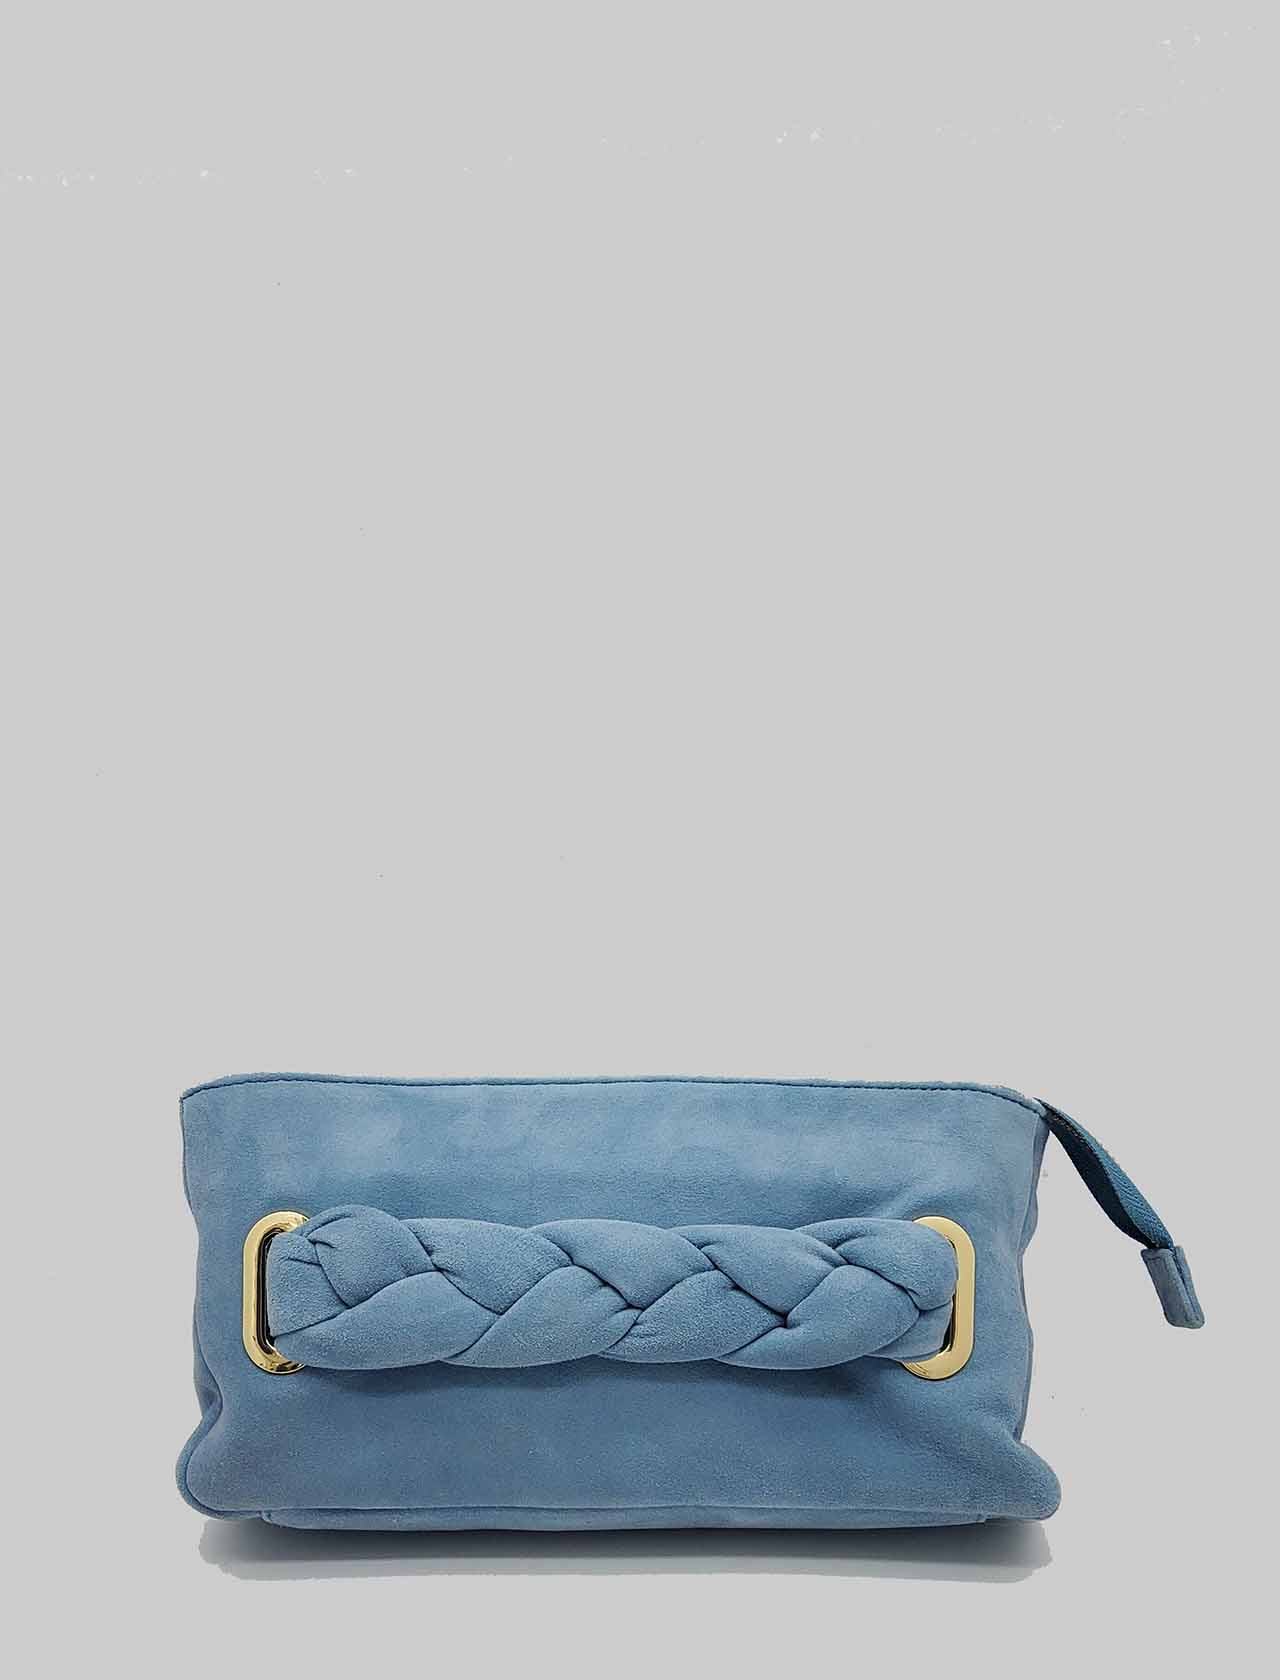 Woman Bag Clutch Bag in Blue Suede with Braided Handle and Removable Shoulder Strap in Color Unisa | Bags and backpacks | ZFORIS026